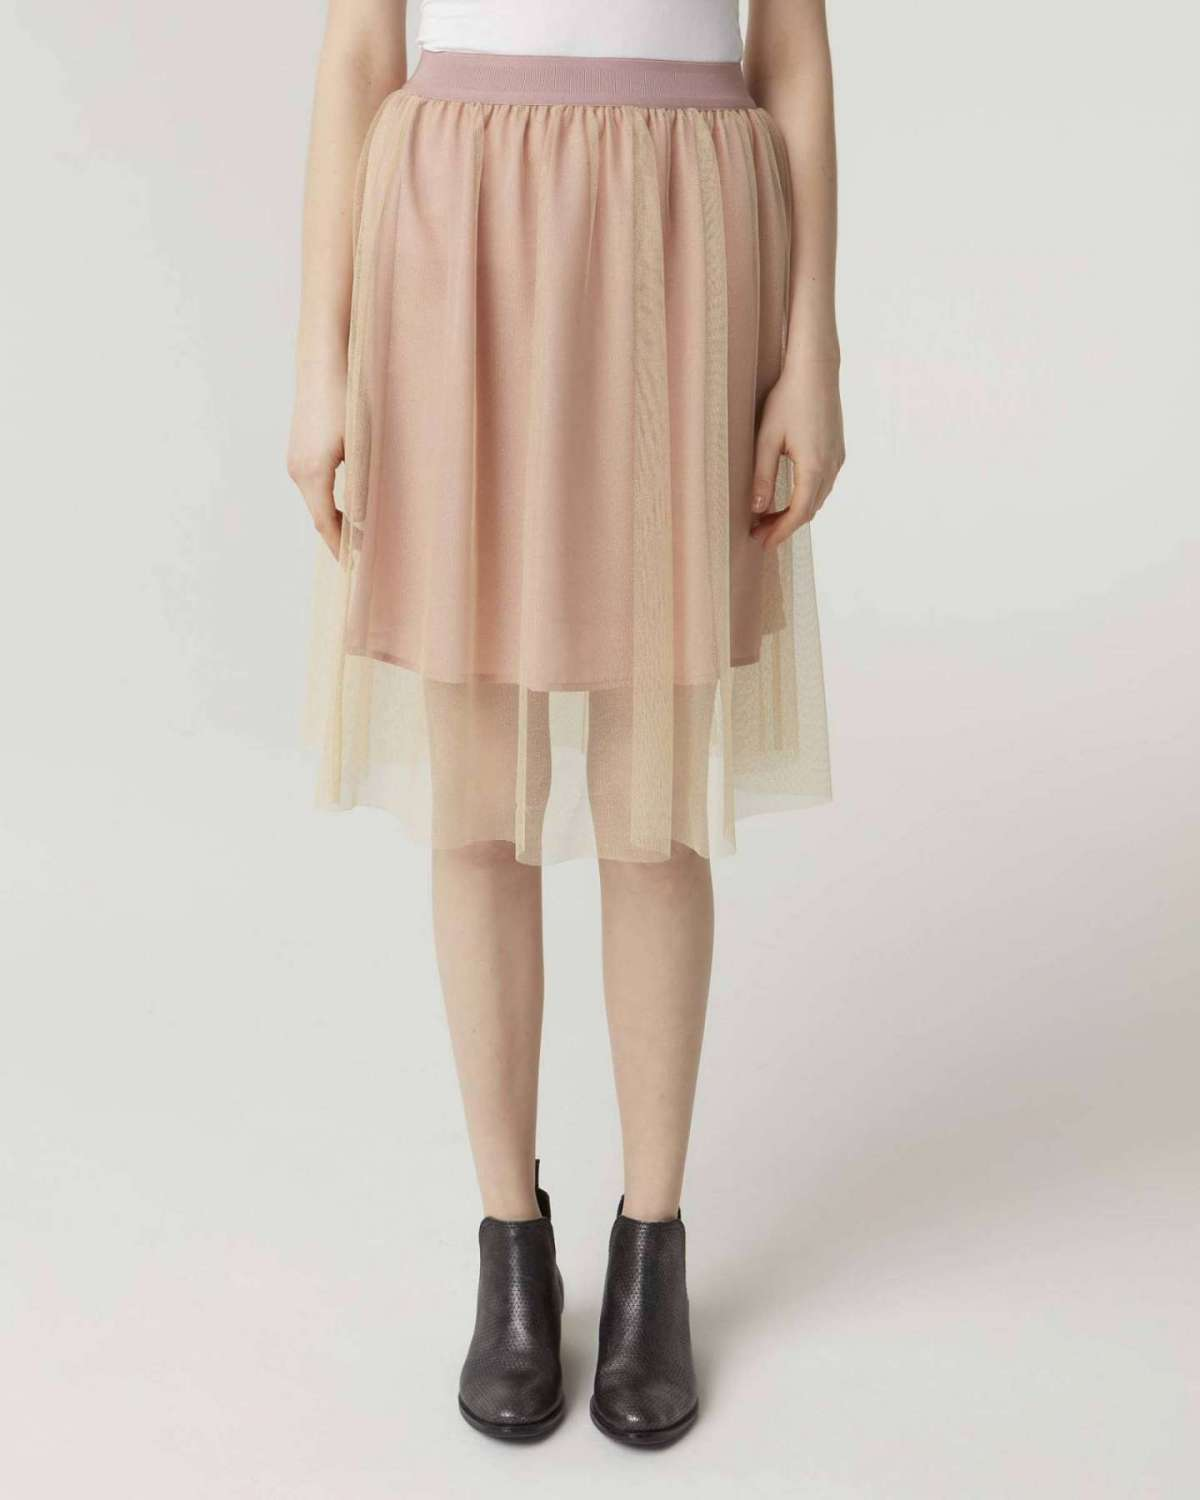 Gonna in tulle Sisley a 49 euro